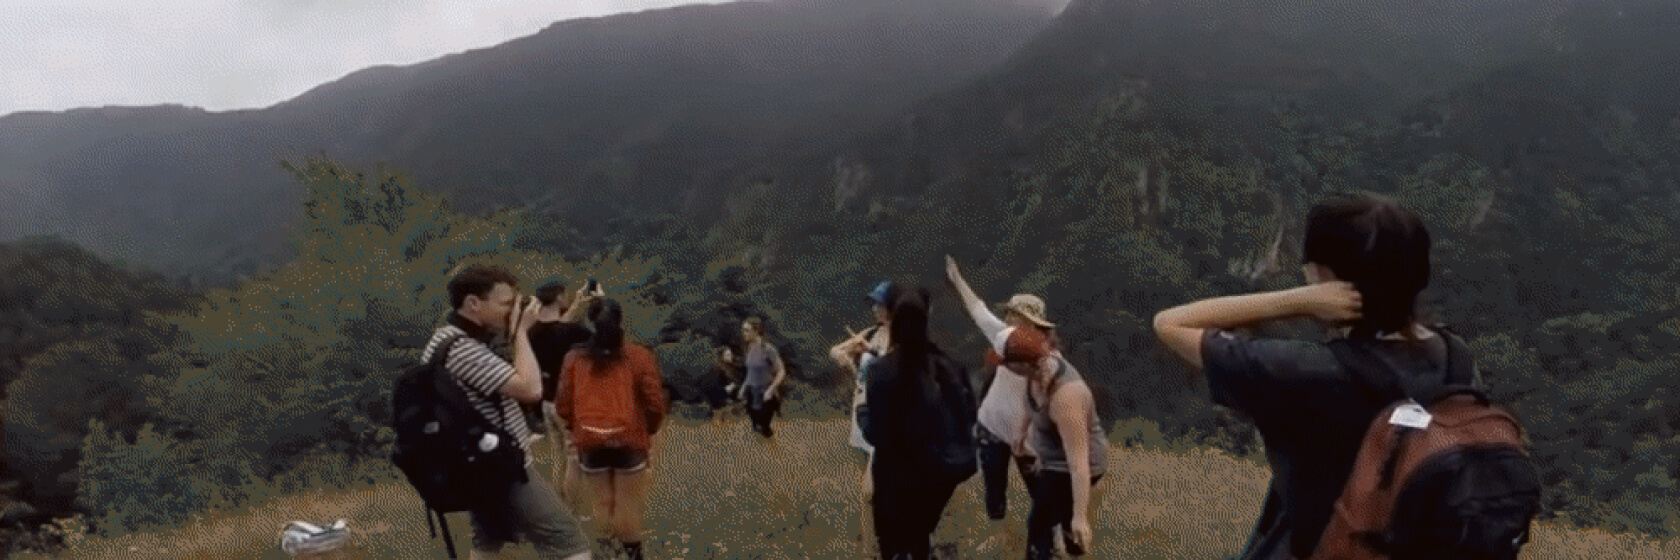 Student group hikes through valley.